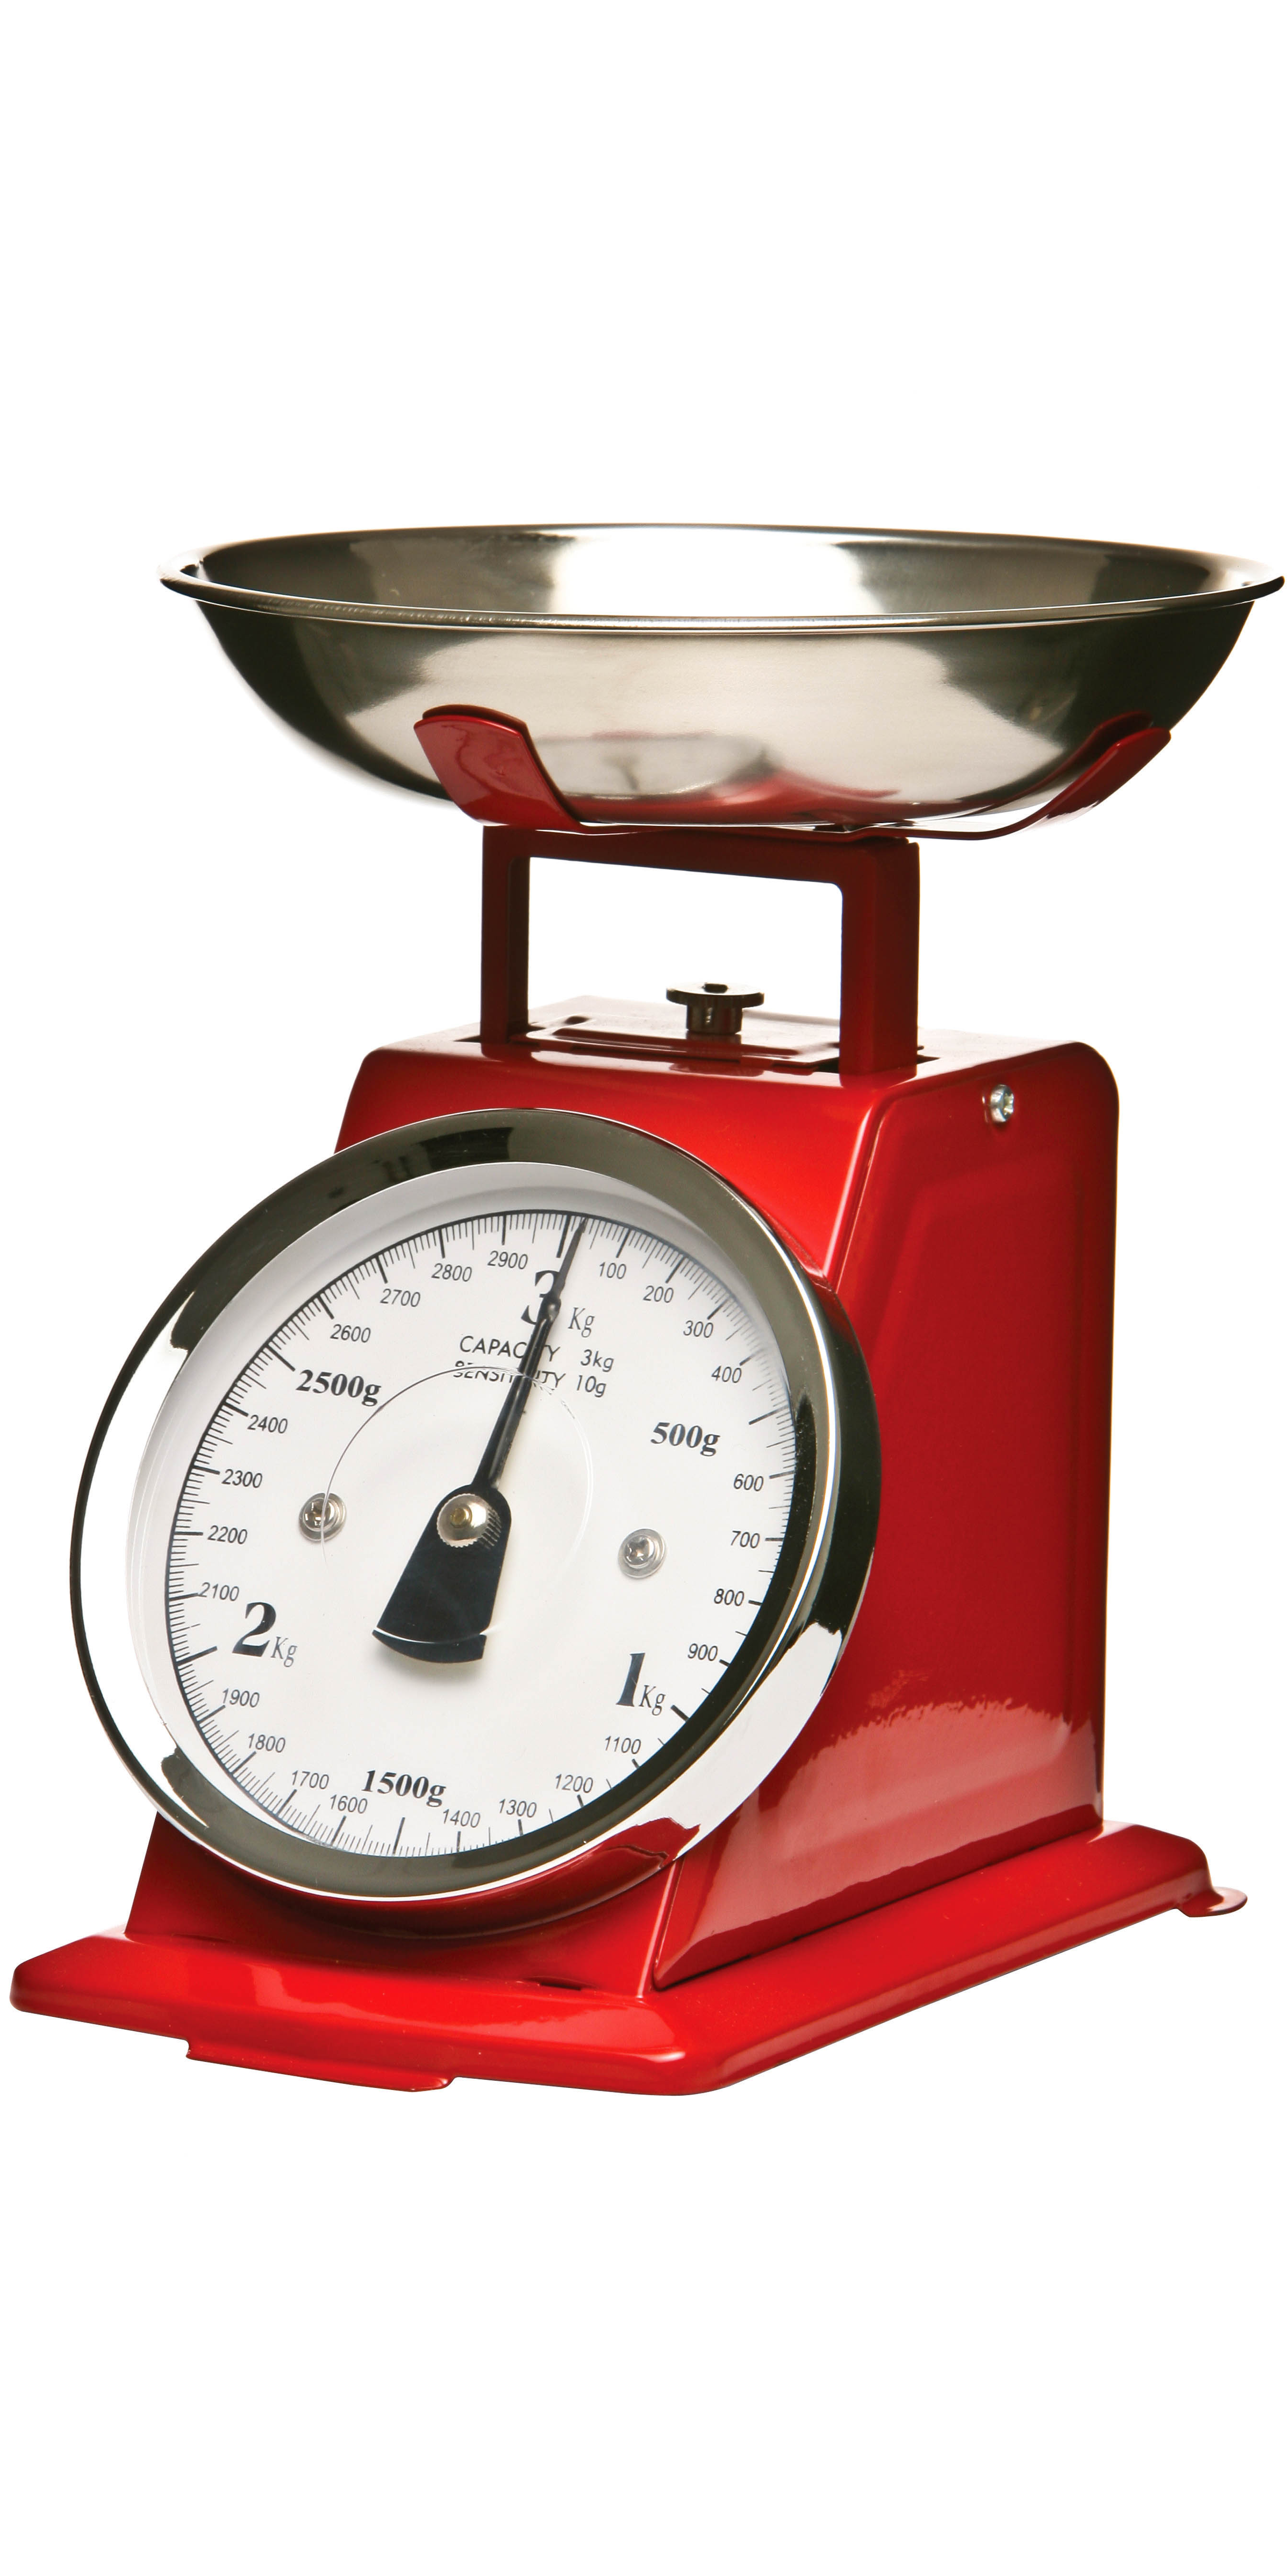 Retro-style kitchen scale from stainless steel